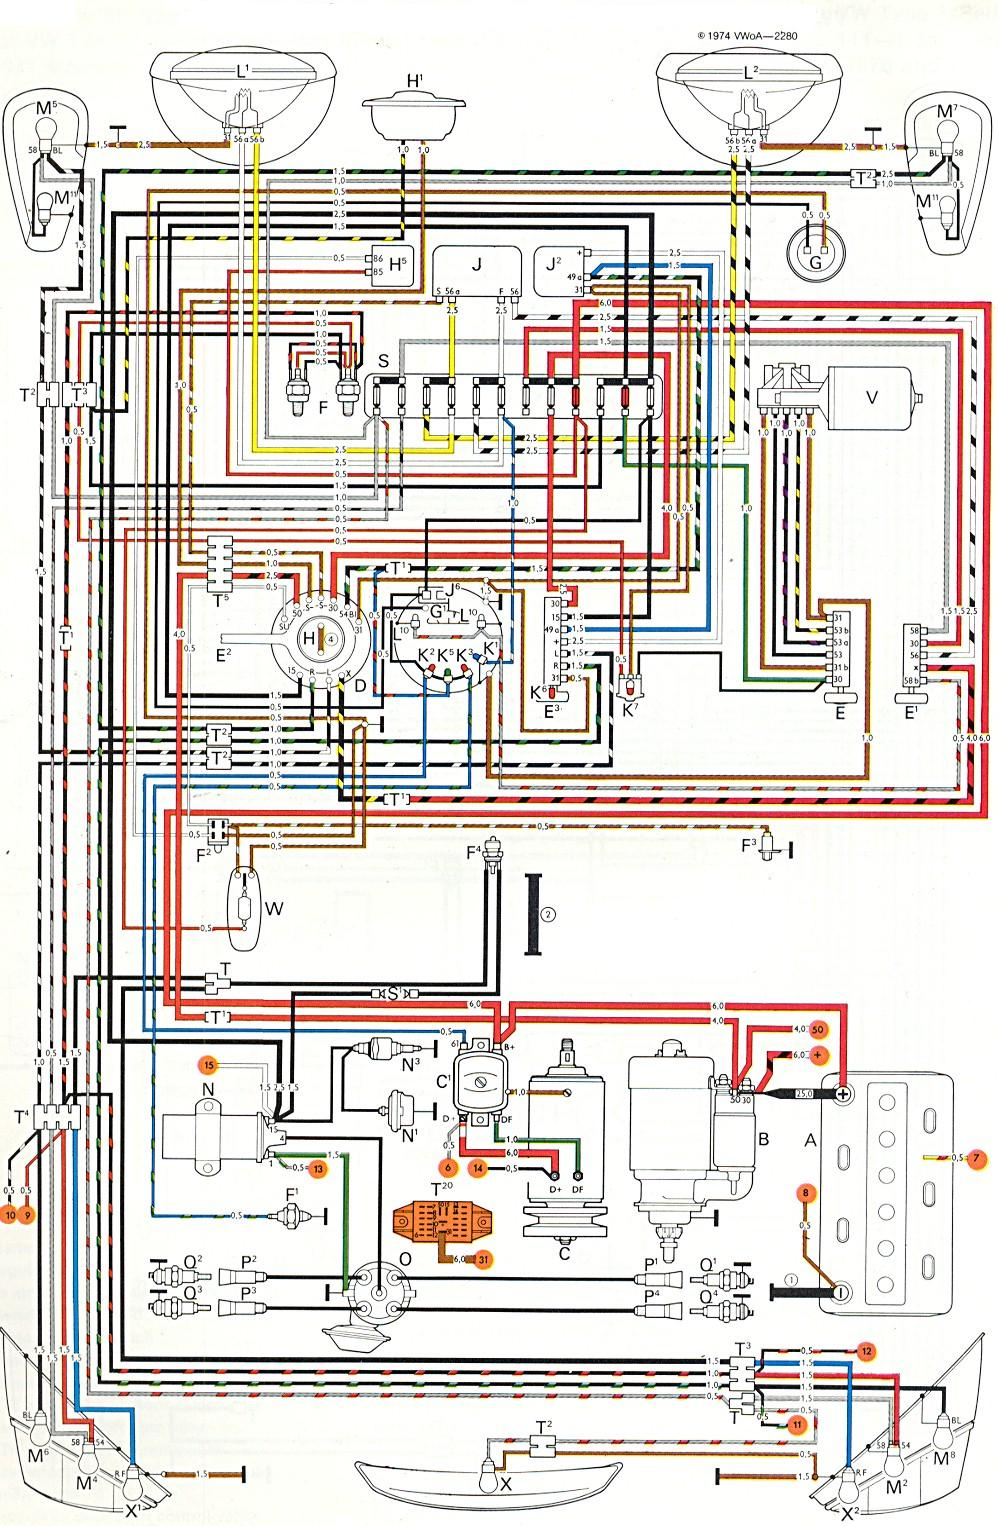 vw beetle wiring diagram vw beetle heater system 1974 vw beetle 1971 vw beetle starter wiring diagram at Vw Beetle Wiring Diagram 1971